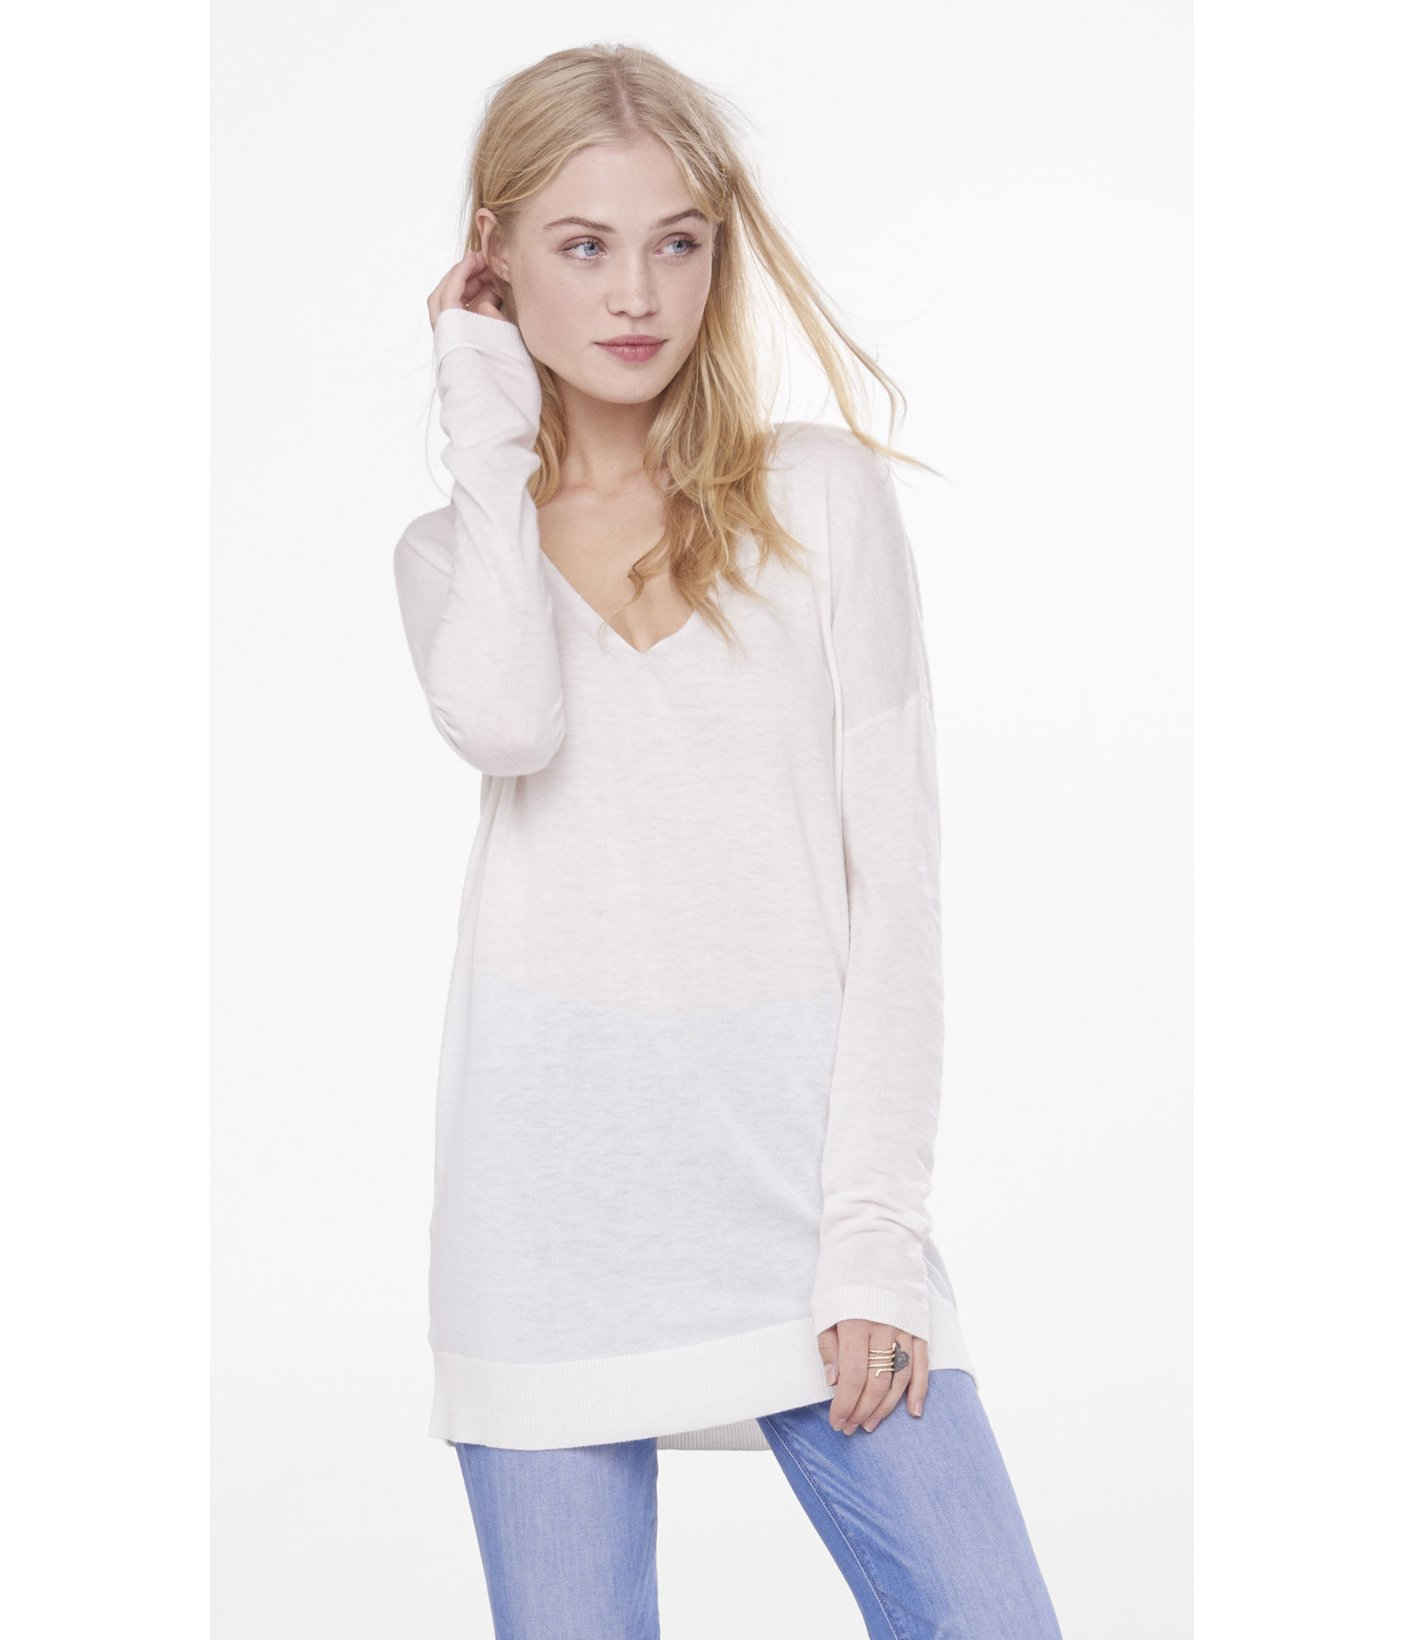 Express Hint Of Cashmere V-neck Wedge Tunic Sweater in White | Lyst